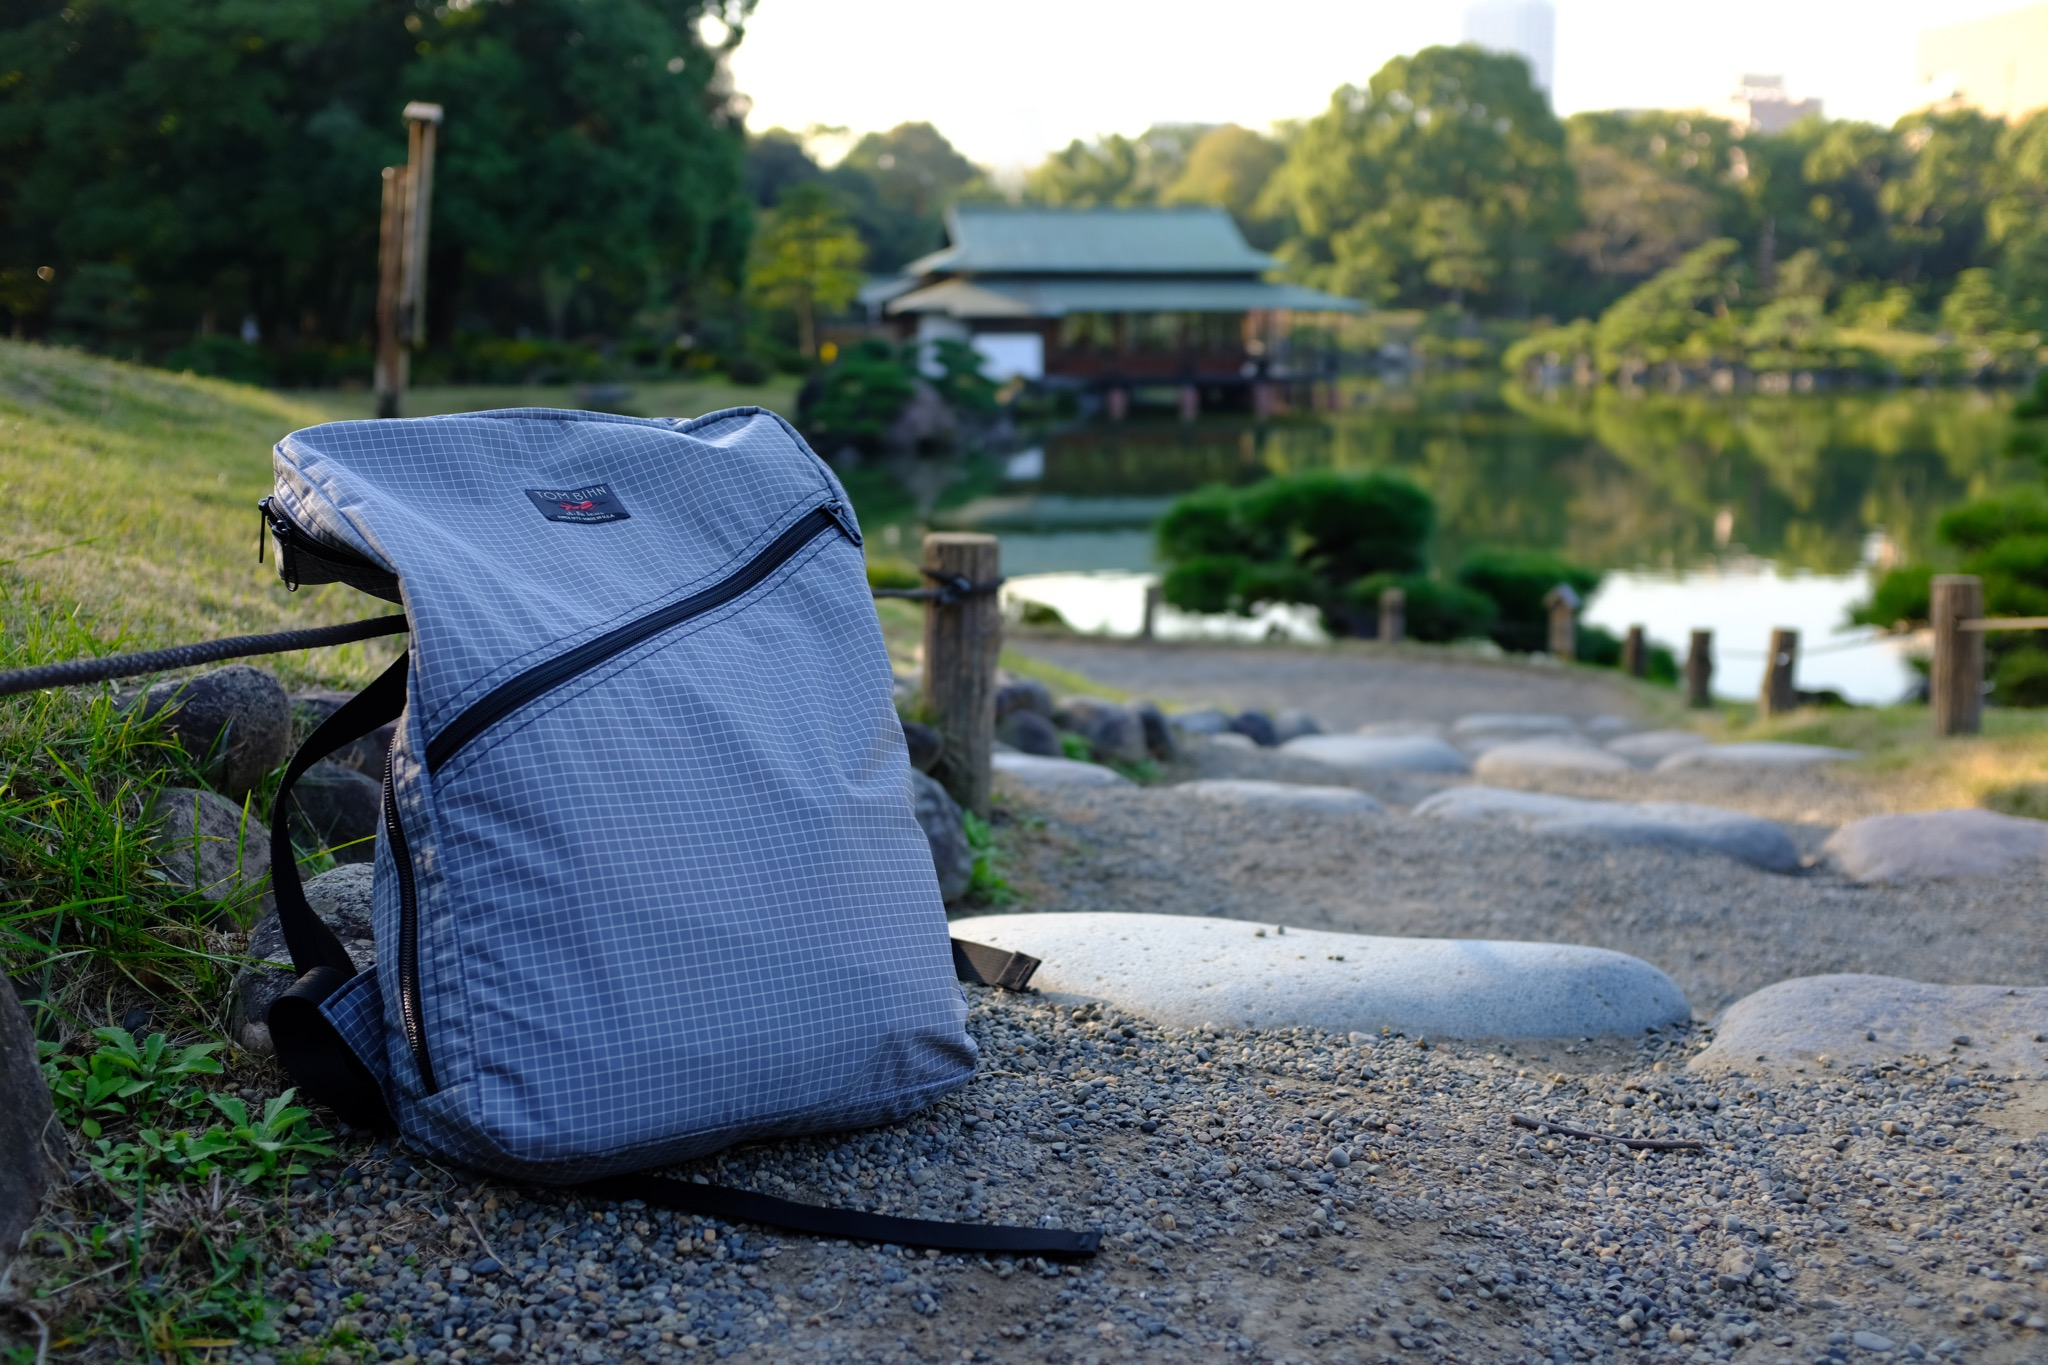 The Packing Cube Backpack during my hike in Kiyosumi Gardens of Tokyo, Japan